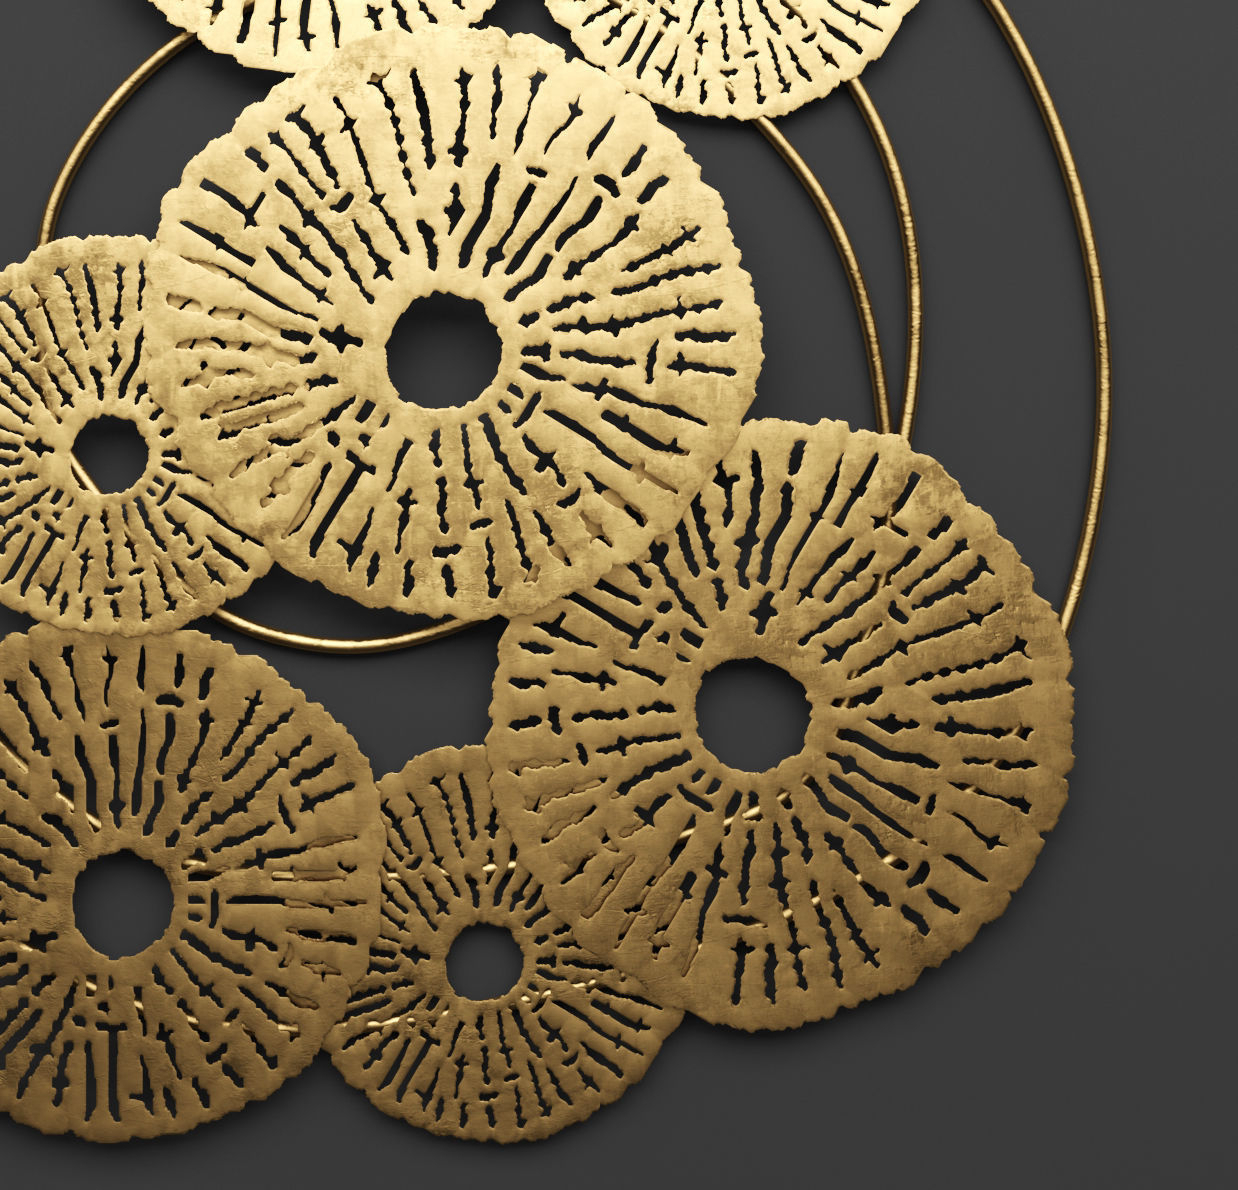 Art Scroll And Compass Mirror Silver Decor Metal Gold within Round Compass Wall Decor (Image 4 of 30)